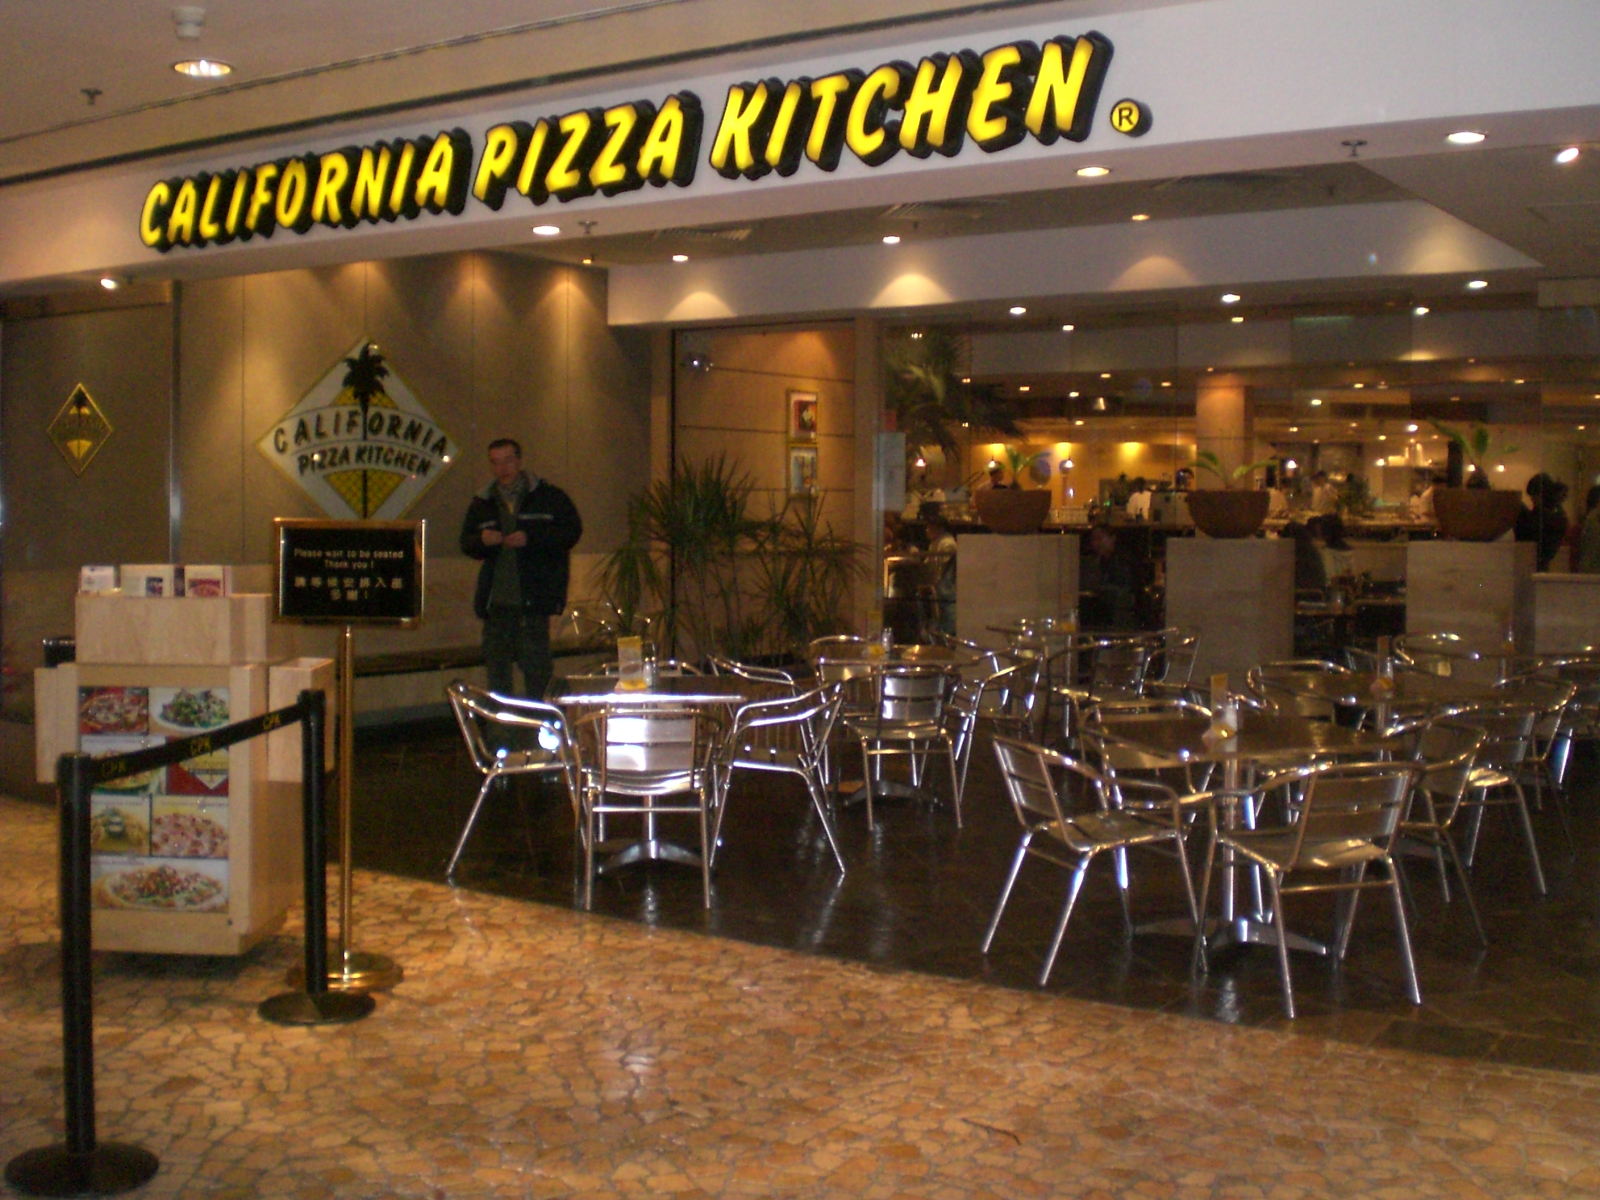 california pizza kitchen overtime pay lawsuit overtime cpk rh overtimepaylaws org california pizza kitchen beverly hills ca 90212 california pizza kitchen beverly hills menu